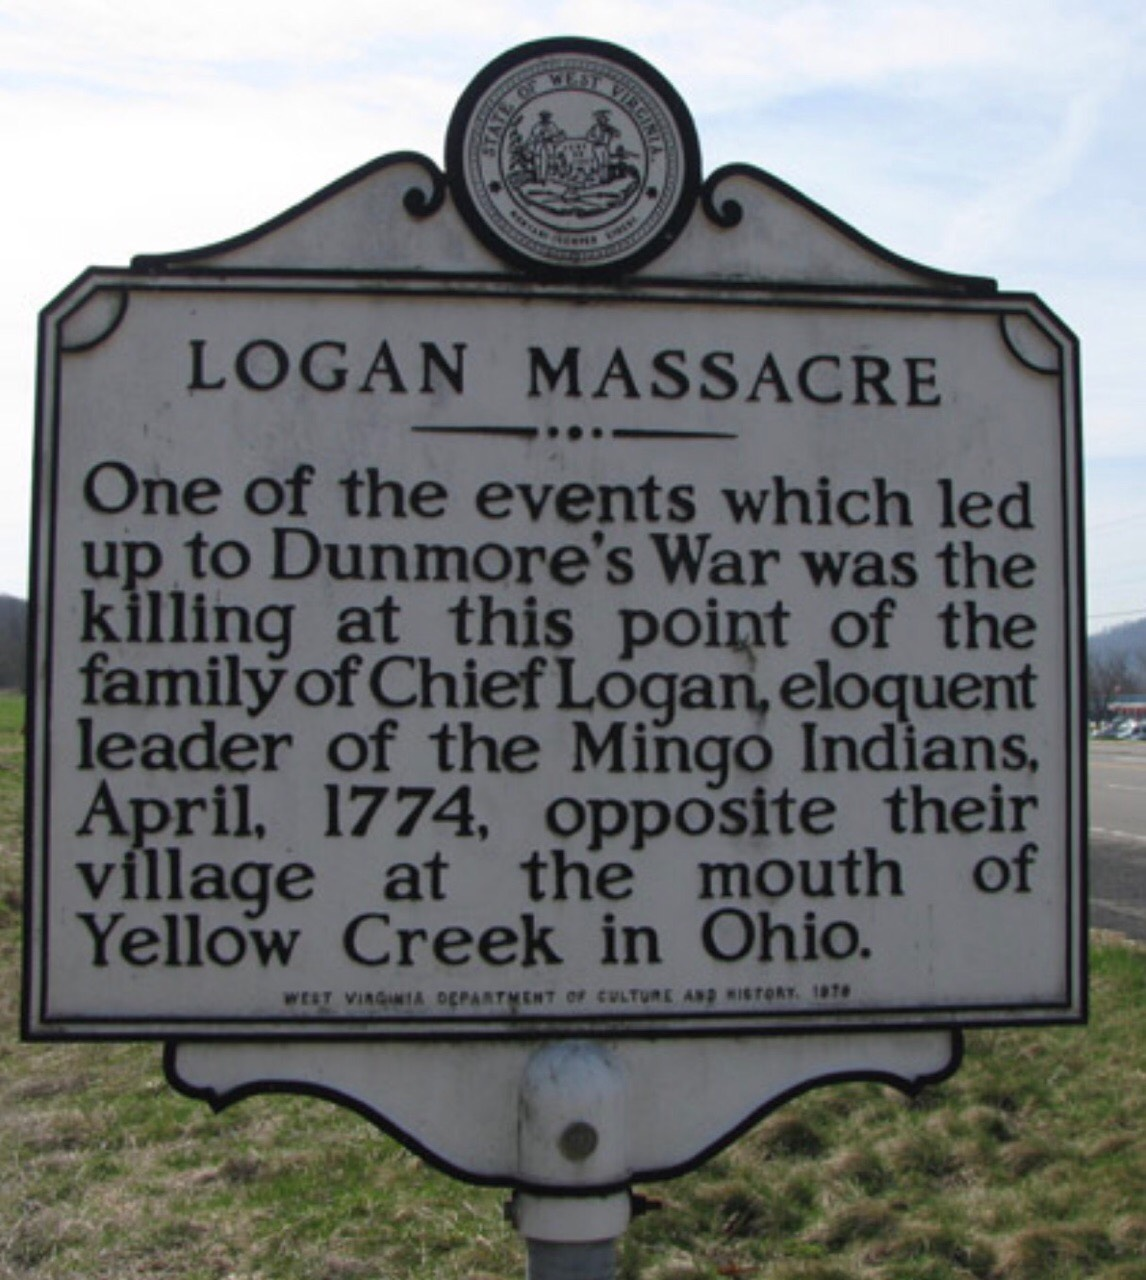 Historical Marker that denotes what occurred at the Logan Massacre.